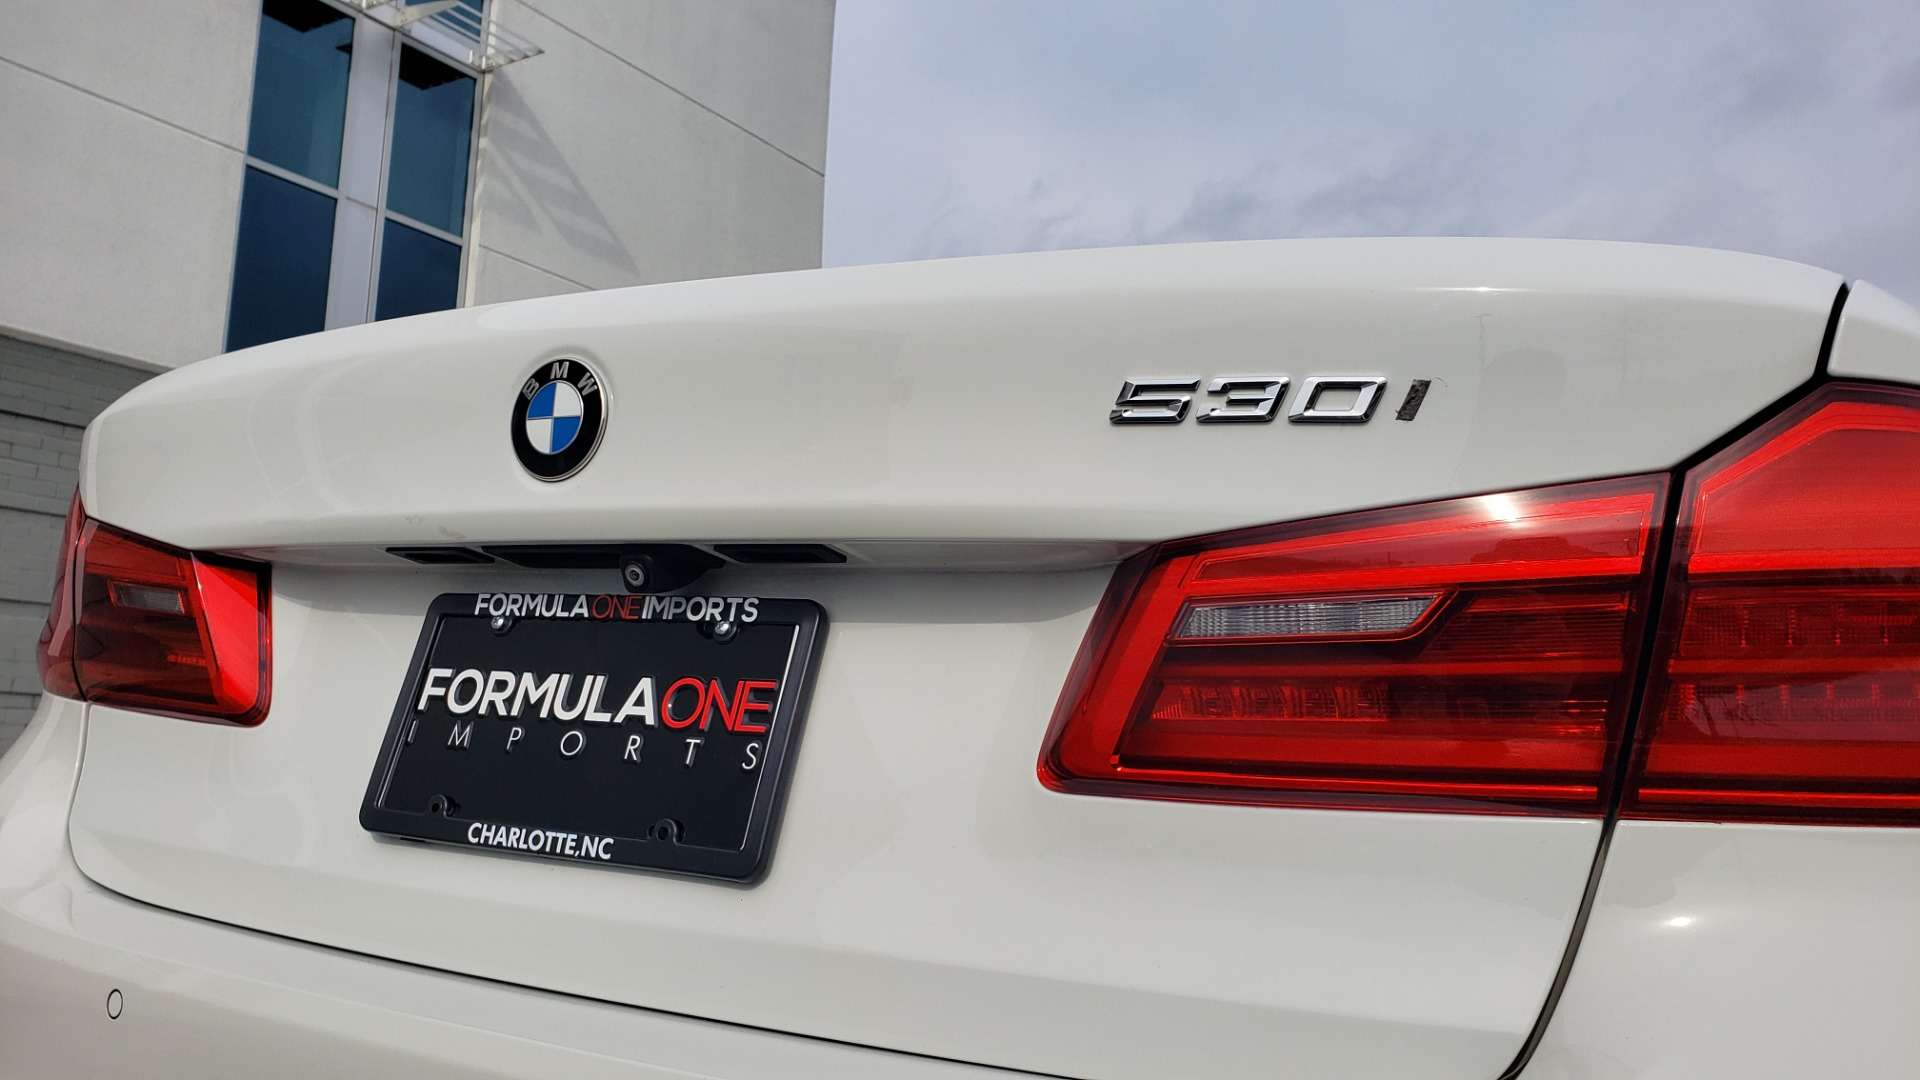 Used 2017 BMW 5 SERIES 530I PREMIUM / DRVR ASST PLUS / NAV / HUD / SUNROOF / REARVIEW for sale Sold at Formula Imports in Charlotte NC 28227 27